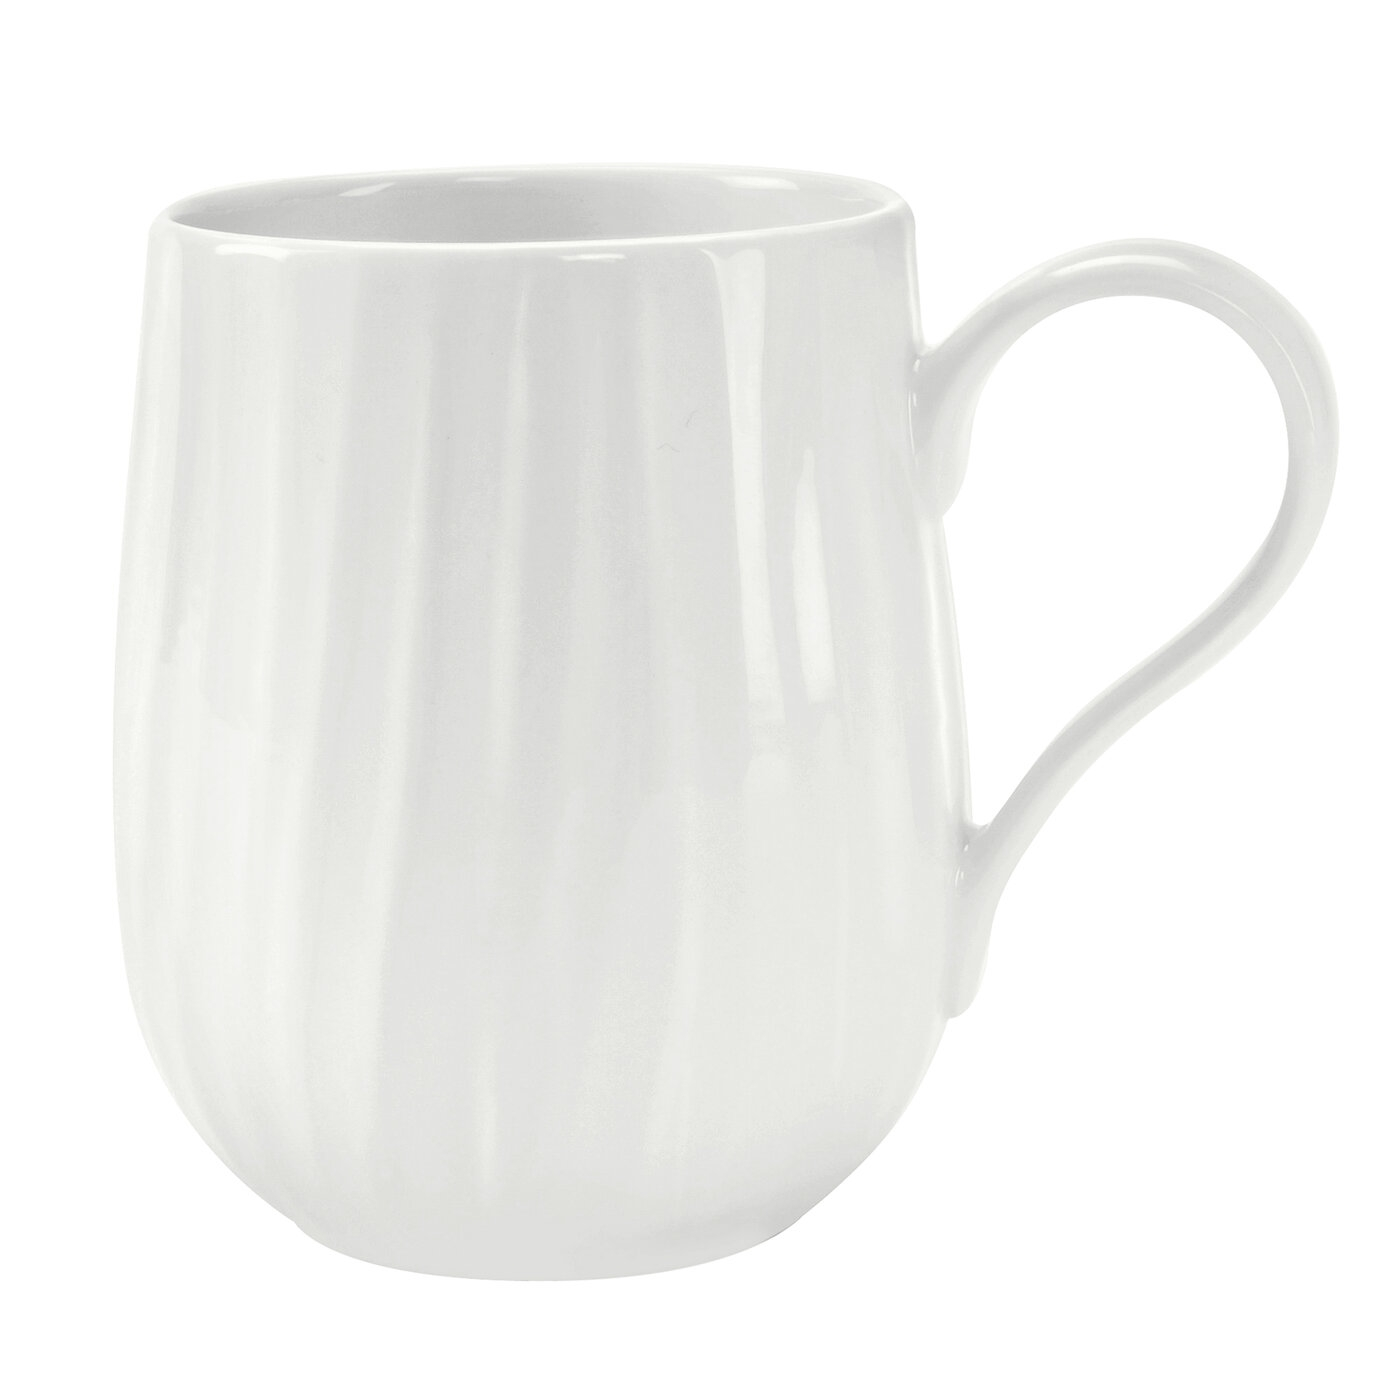 Sophie Conran for Portmeirion White Oak 15oz Mug image number 0